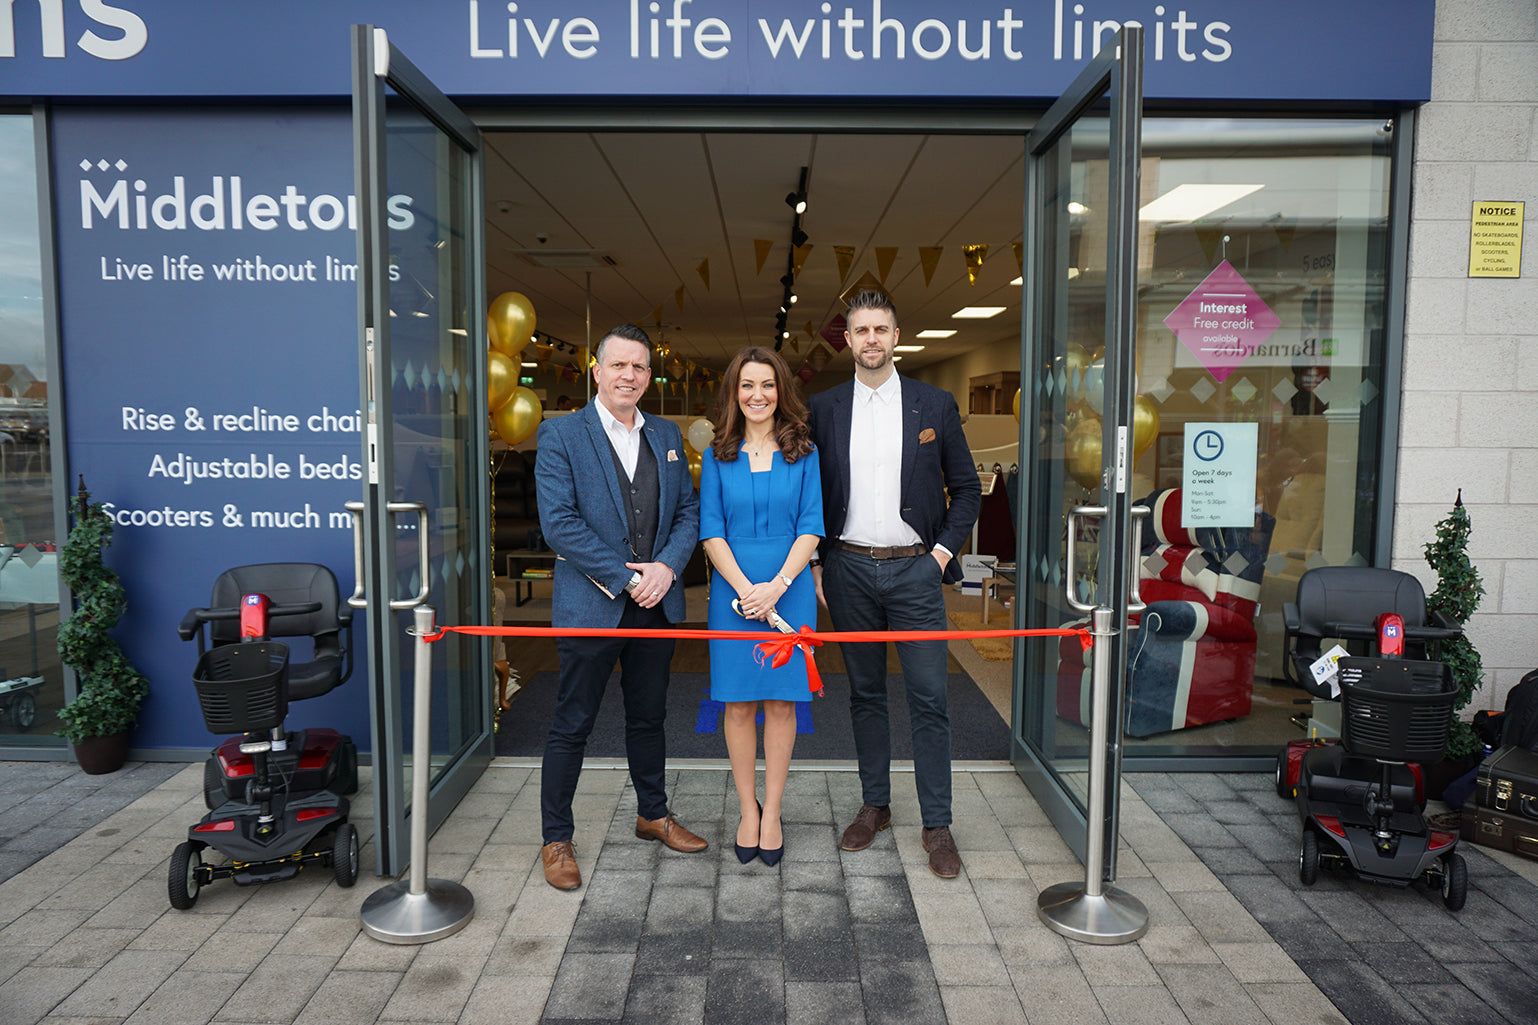 Kate Middleton lookalike cuts red ribbon to open new Middletons store in Coventry